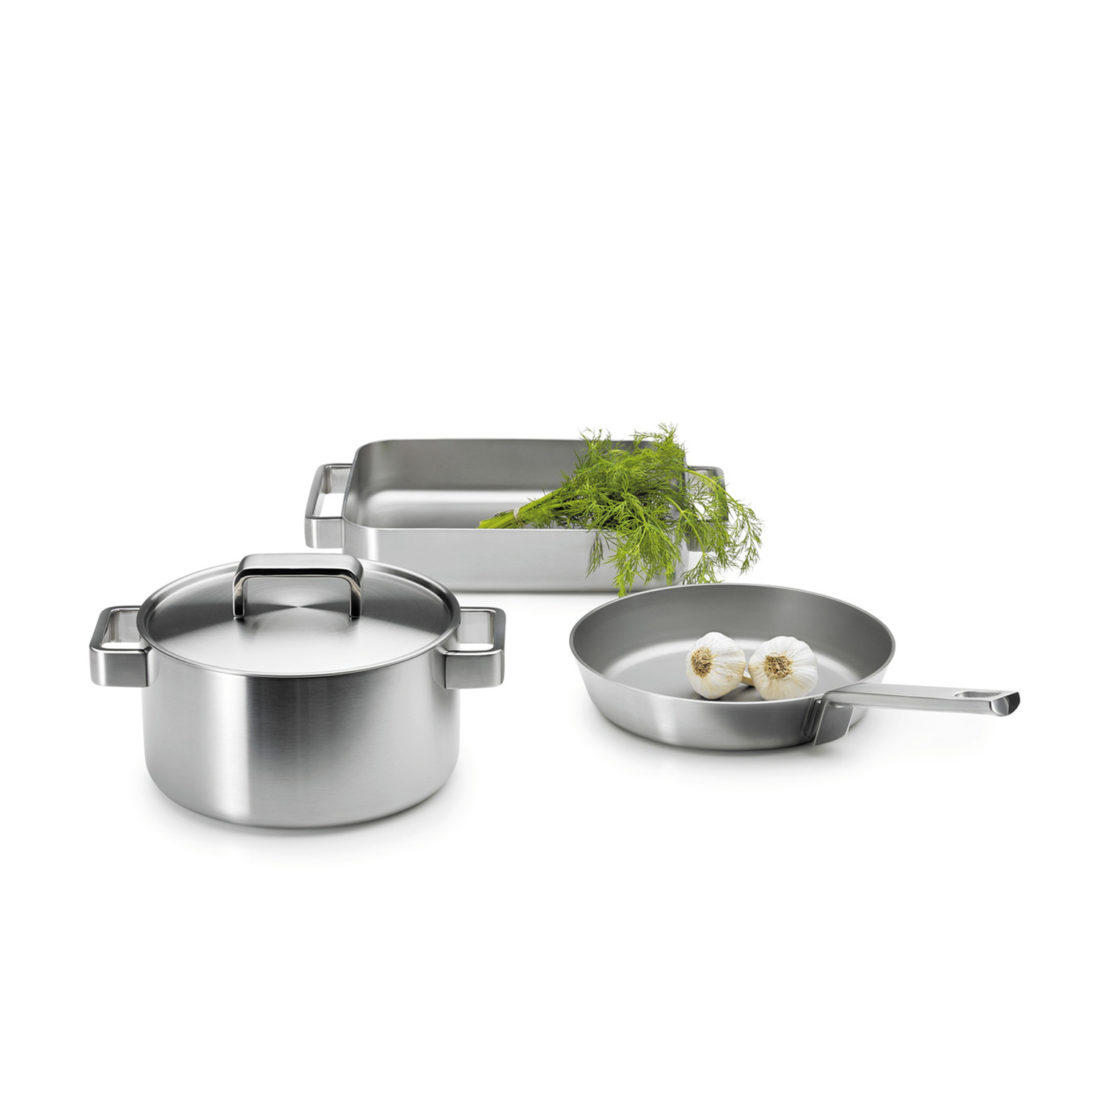 TOOLS Frying Pan 28cm